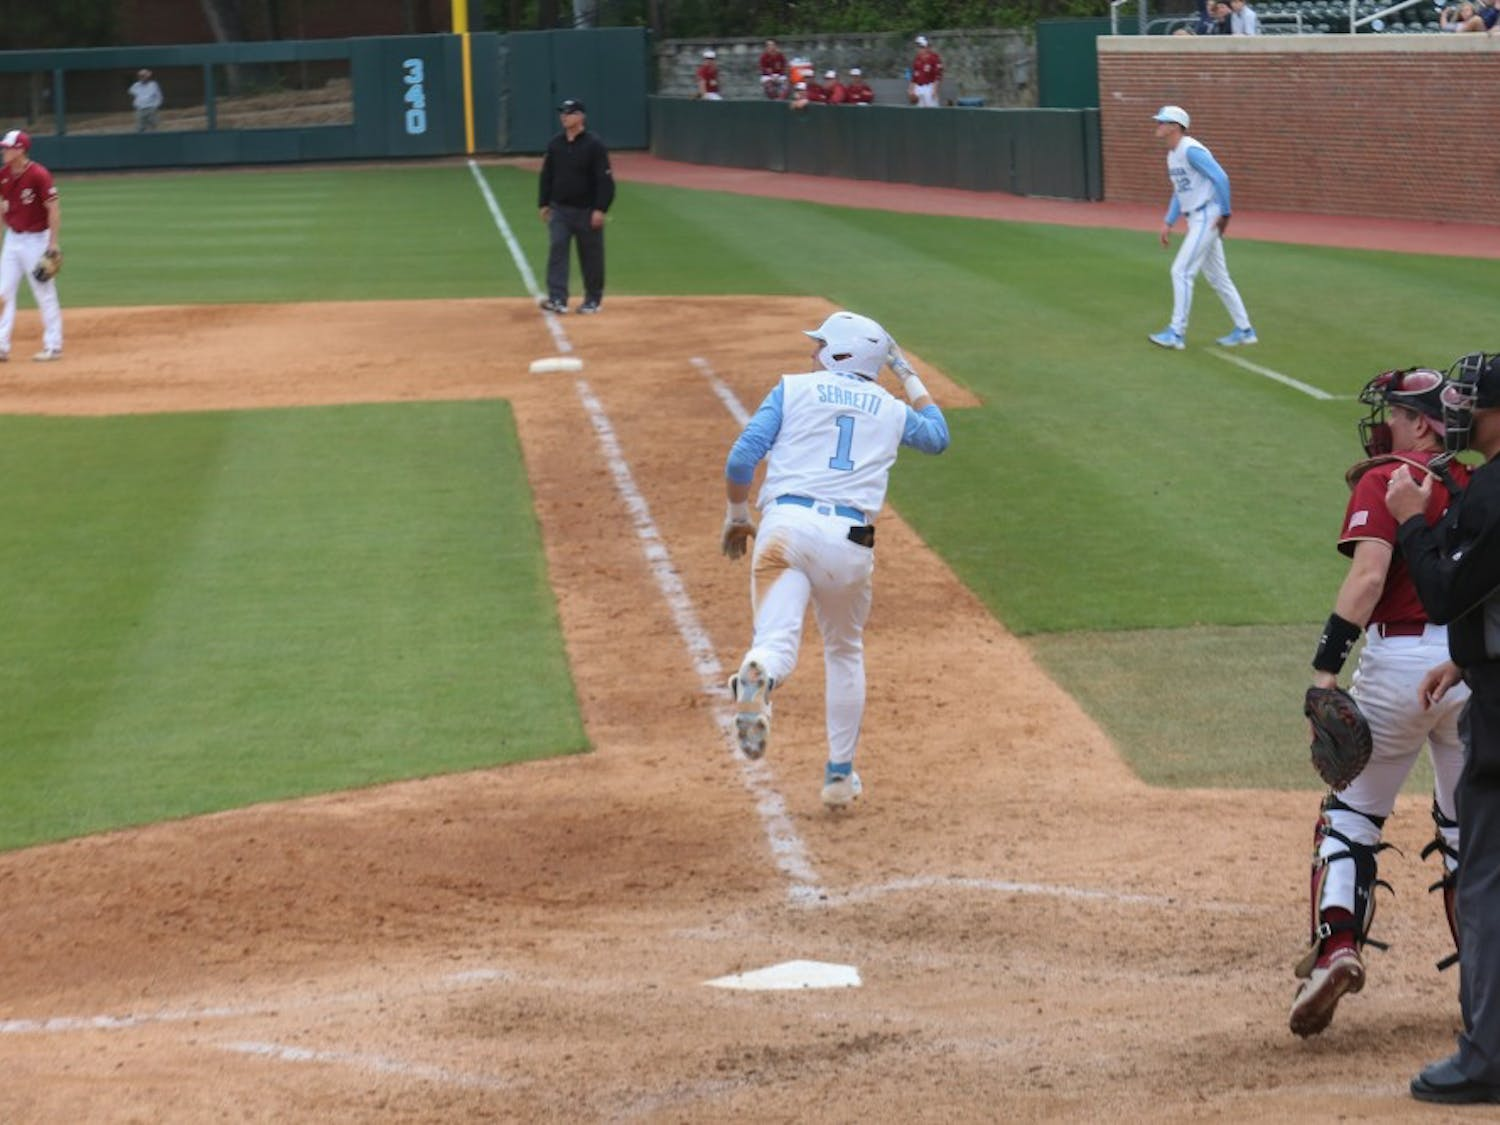 First-year Danny Serretti (1) heads for first base during the Tar Heels' third baseball game against Boston College on Easter weekend.